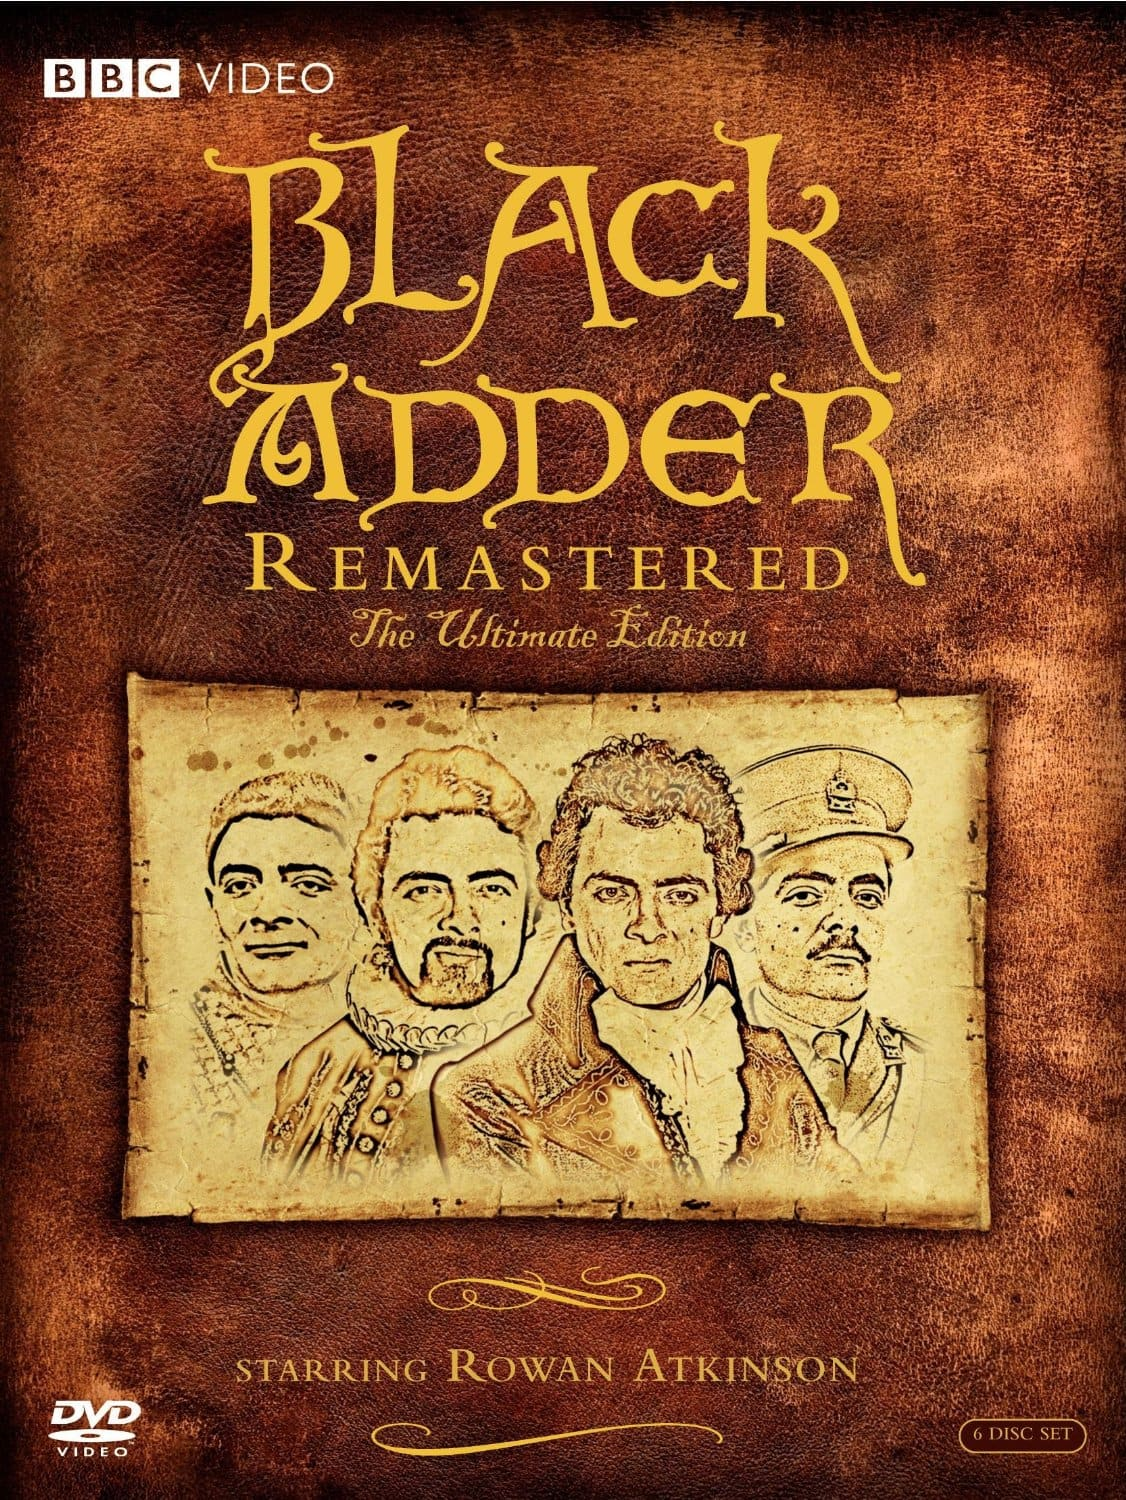 Black Adder: Remastered: The Ultimate Edition (DVD) $19.99 via Amazon